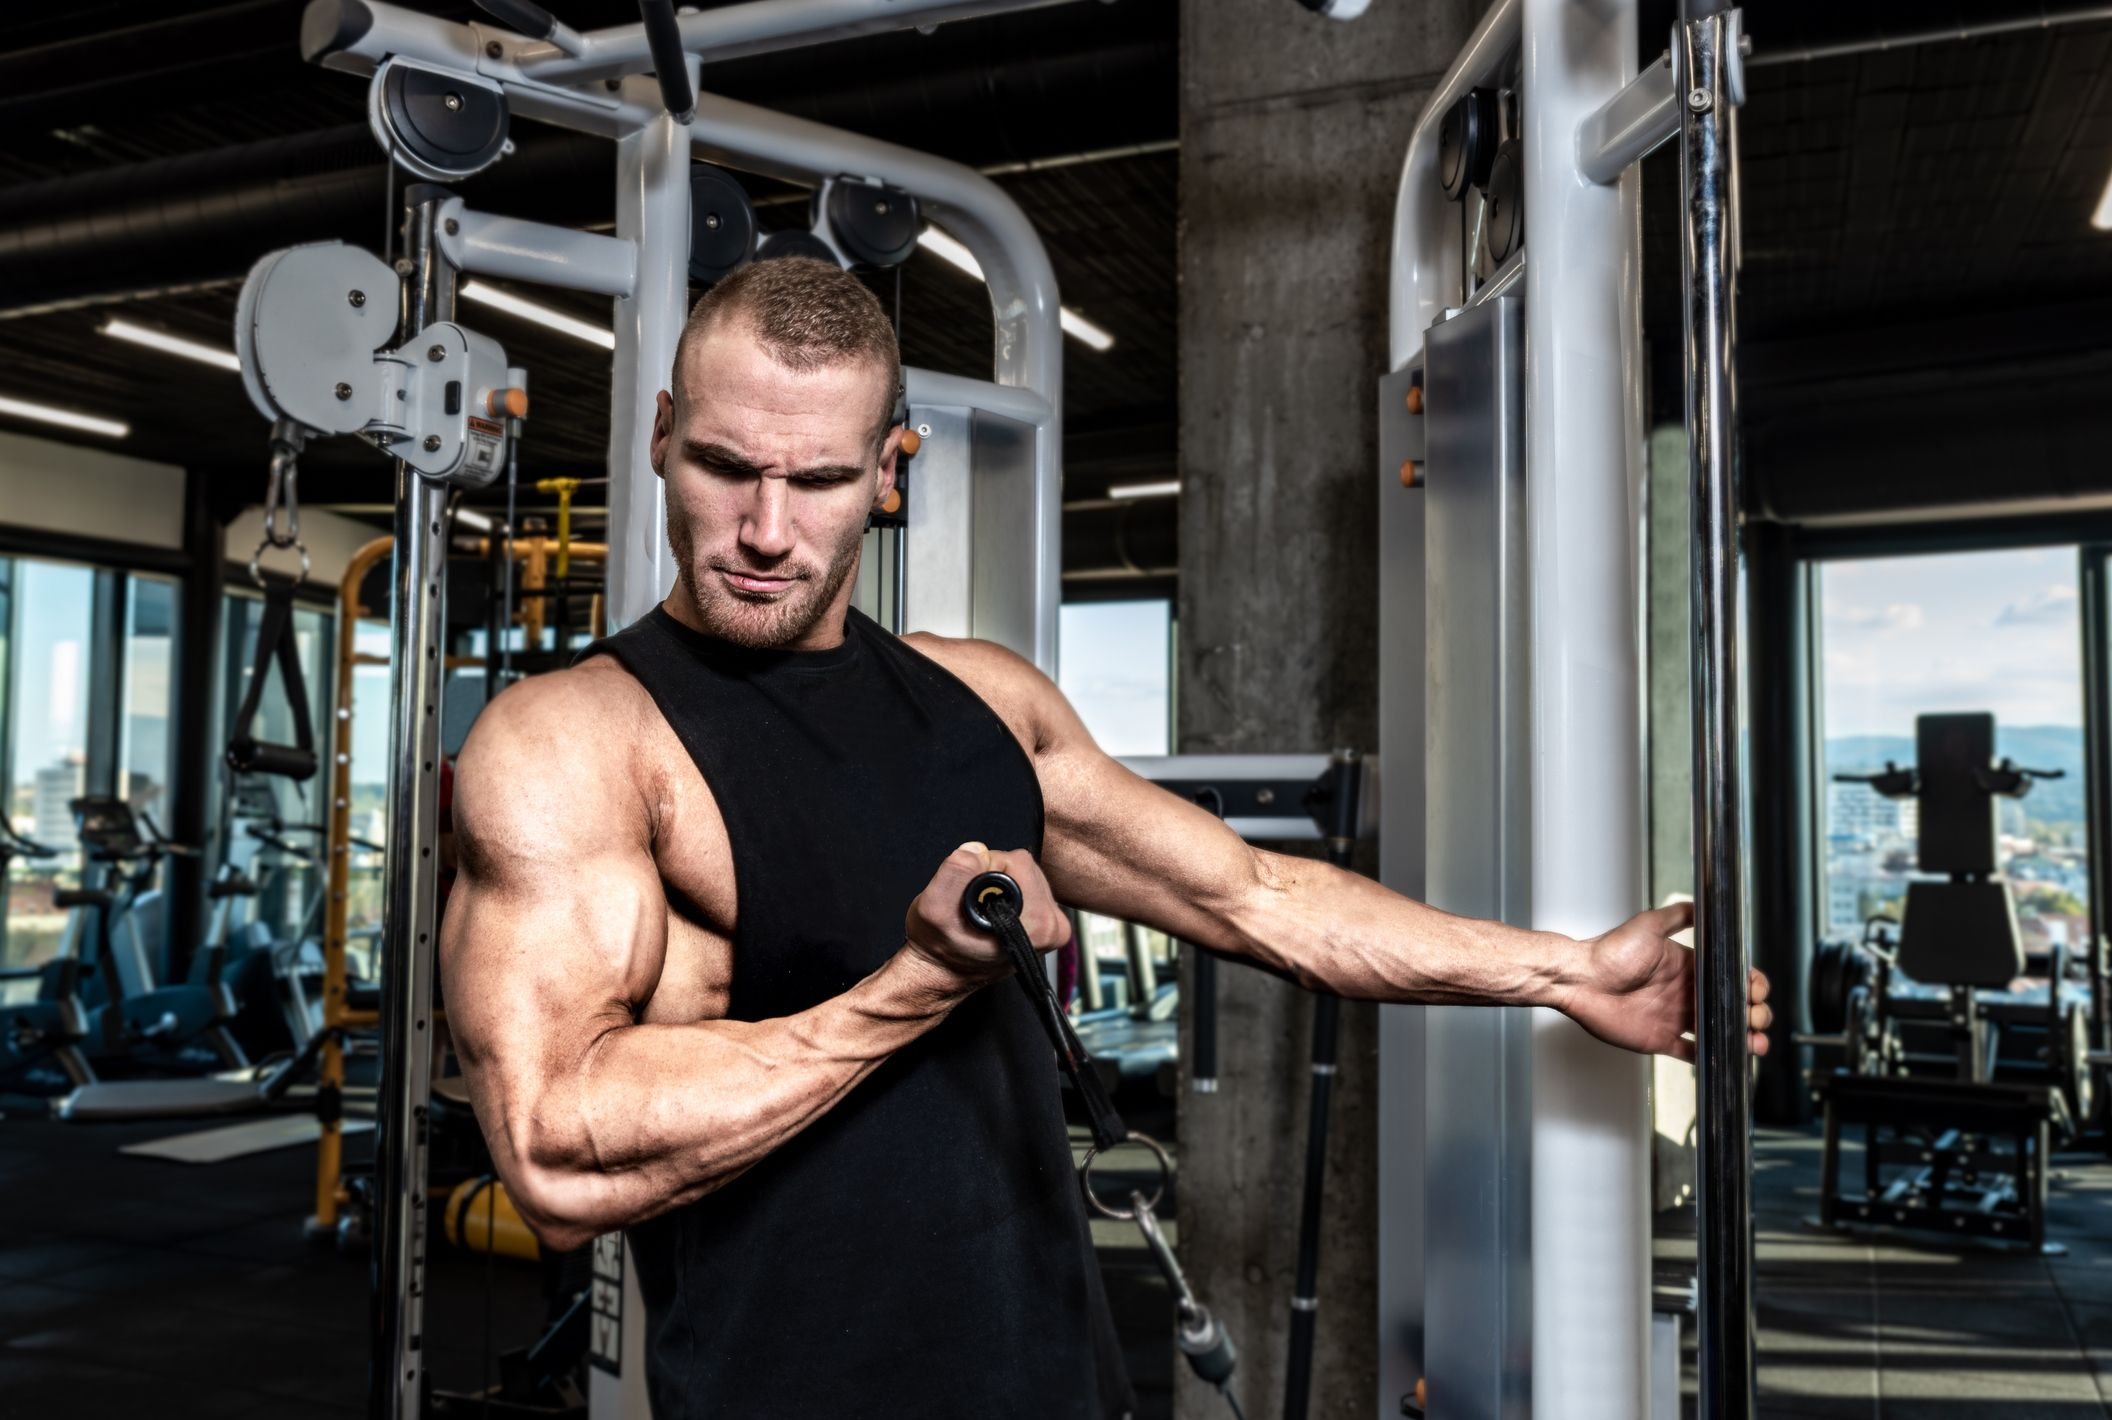 The Arm Workouts You Need To Build Bigger Biceps And Triceps